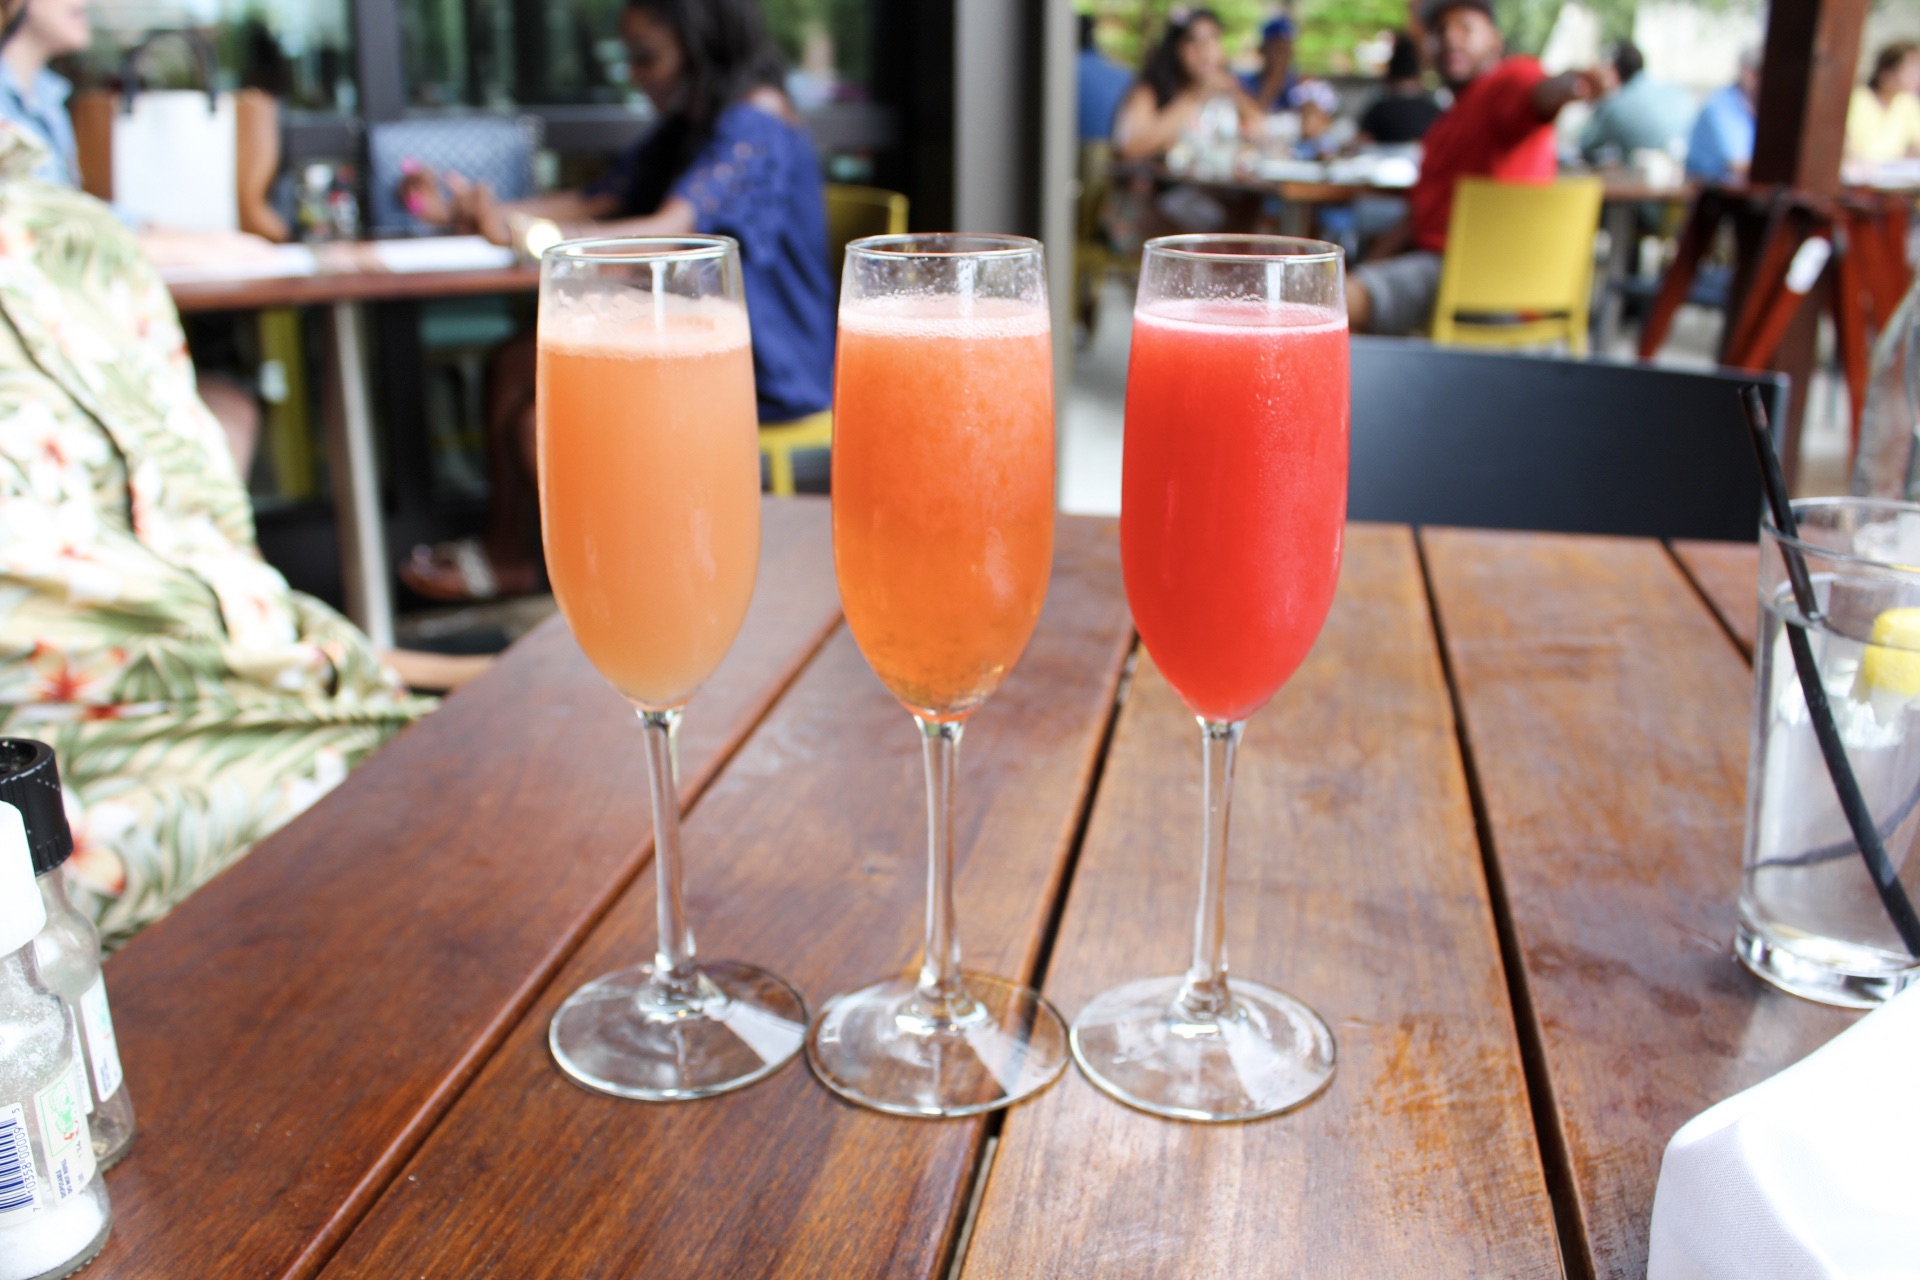 Mimosa Flight - Raspberry, Grapefruit and Stawberry